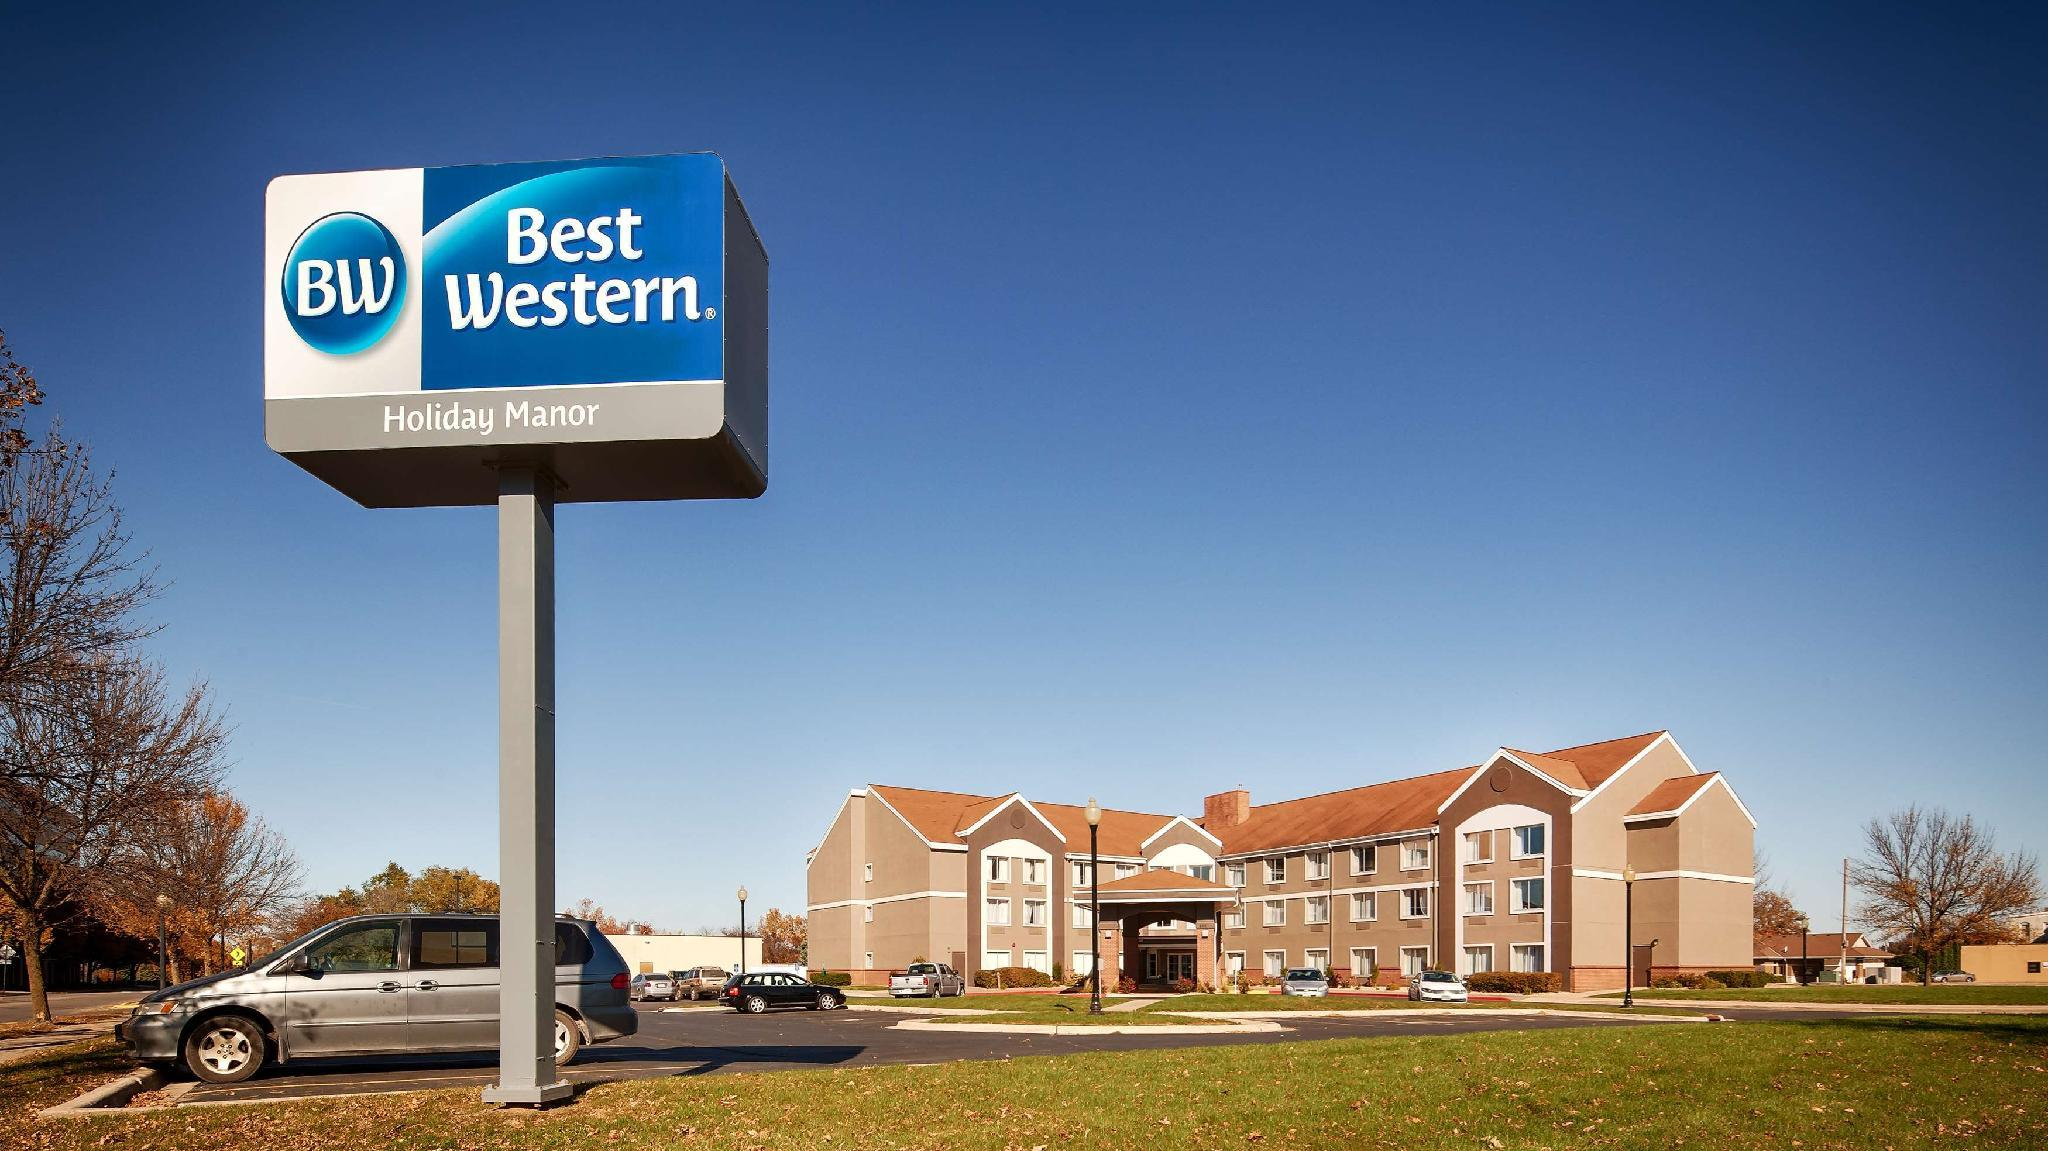 Best Western Holiday Manor